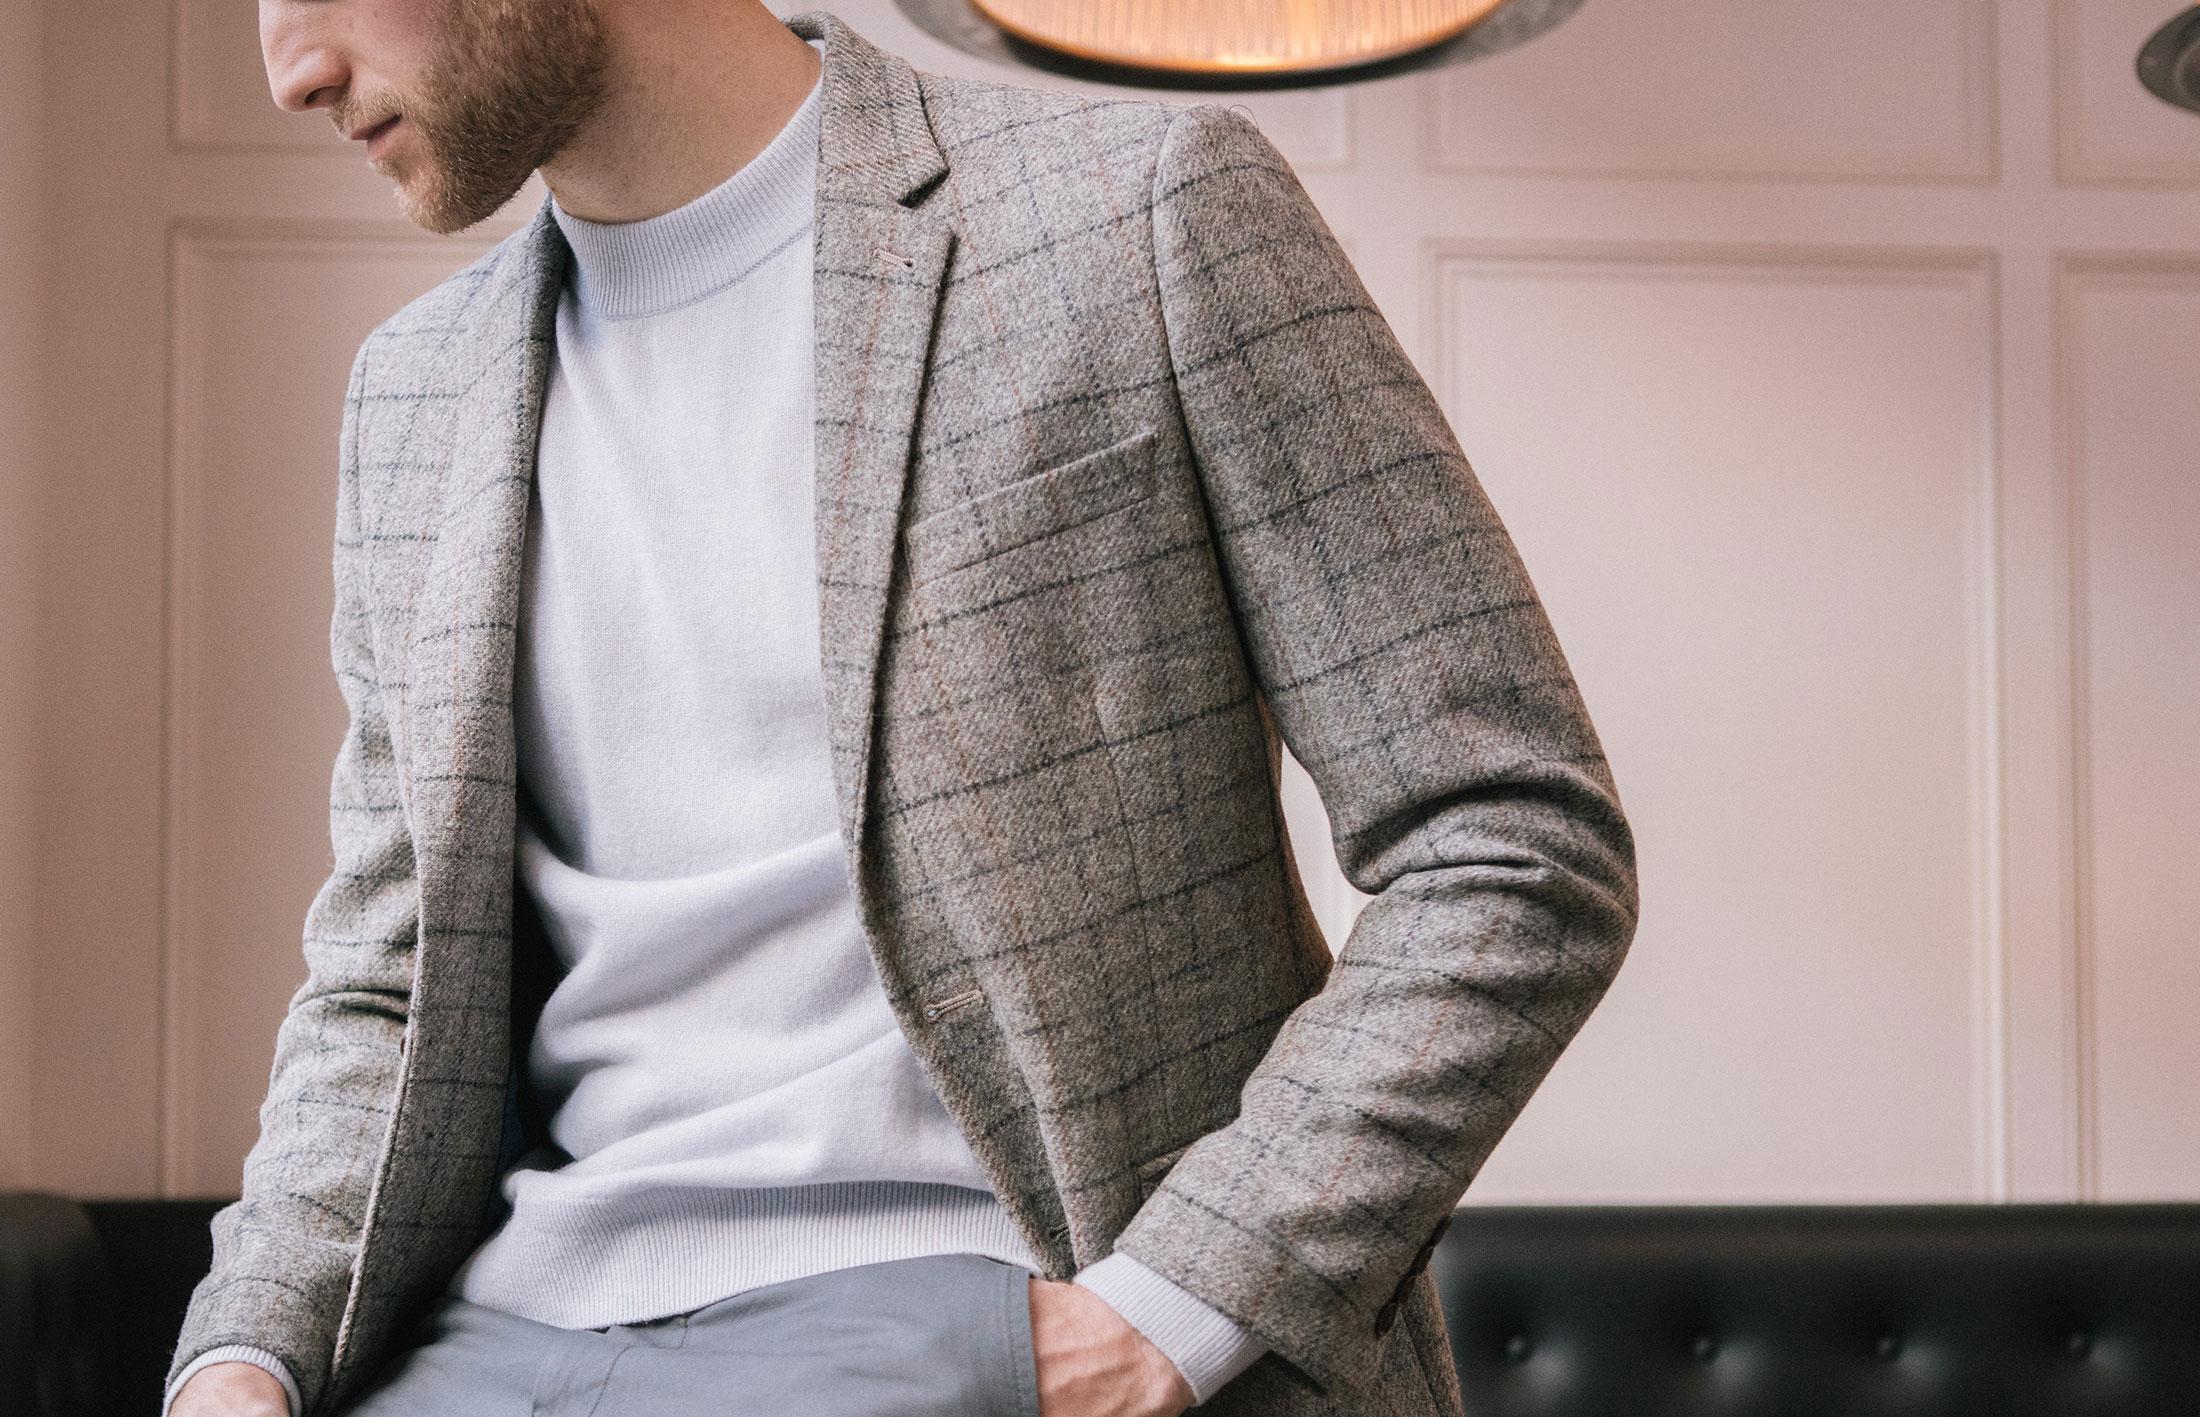 Three ways to wear a patterned blazer